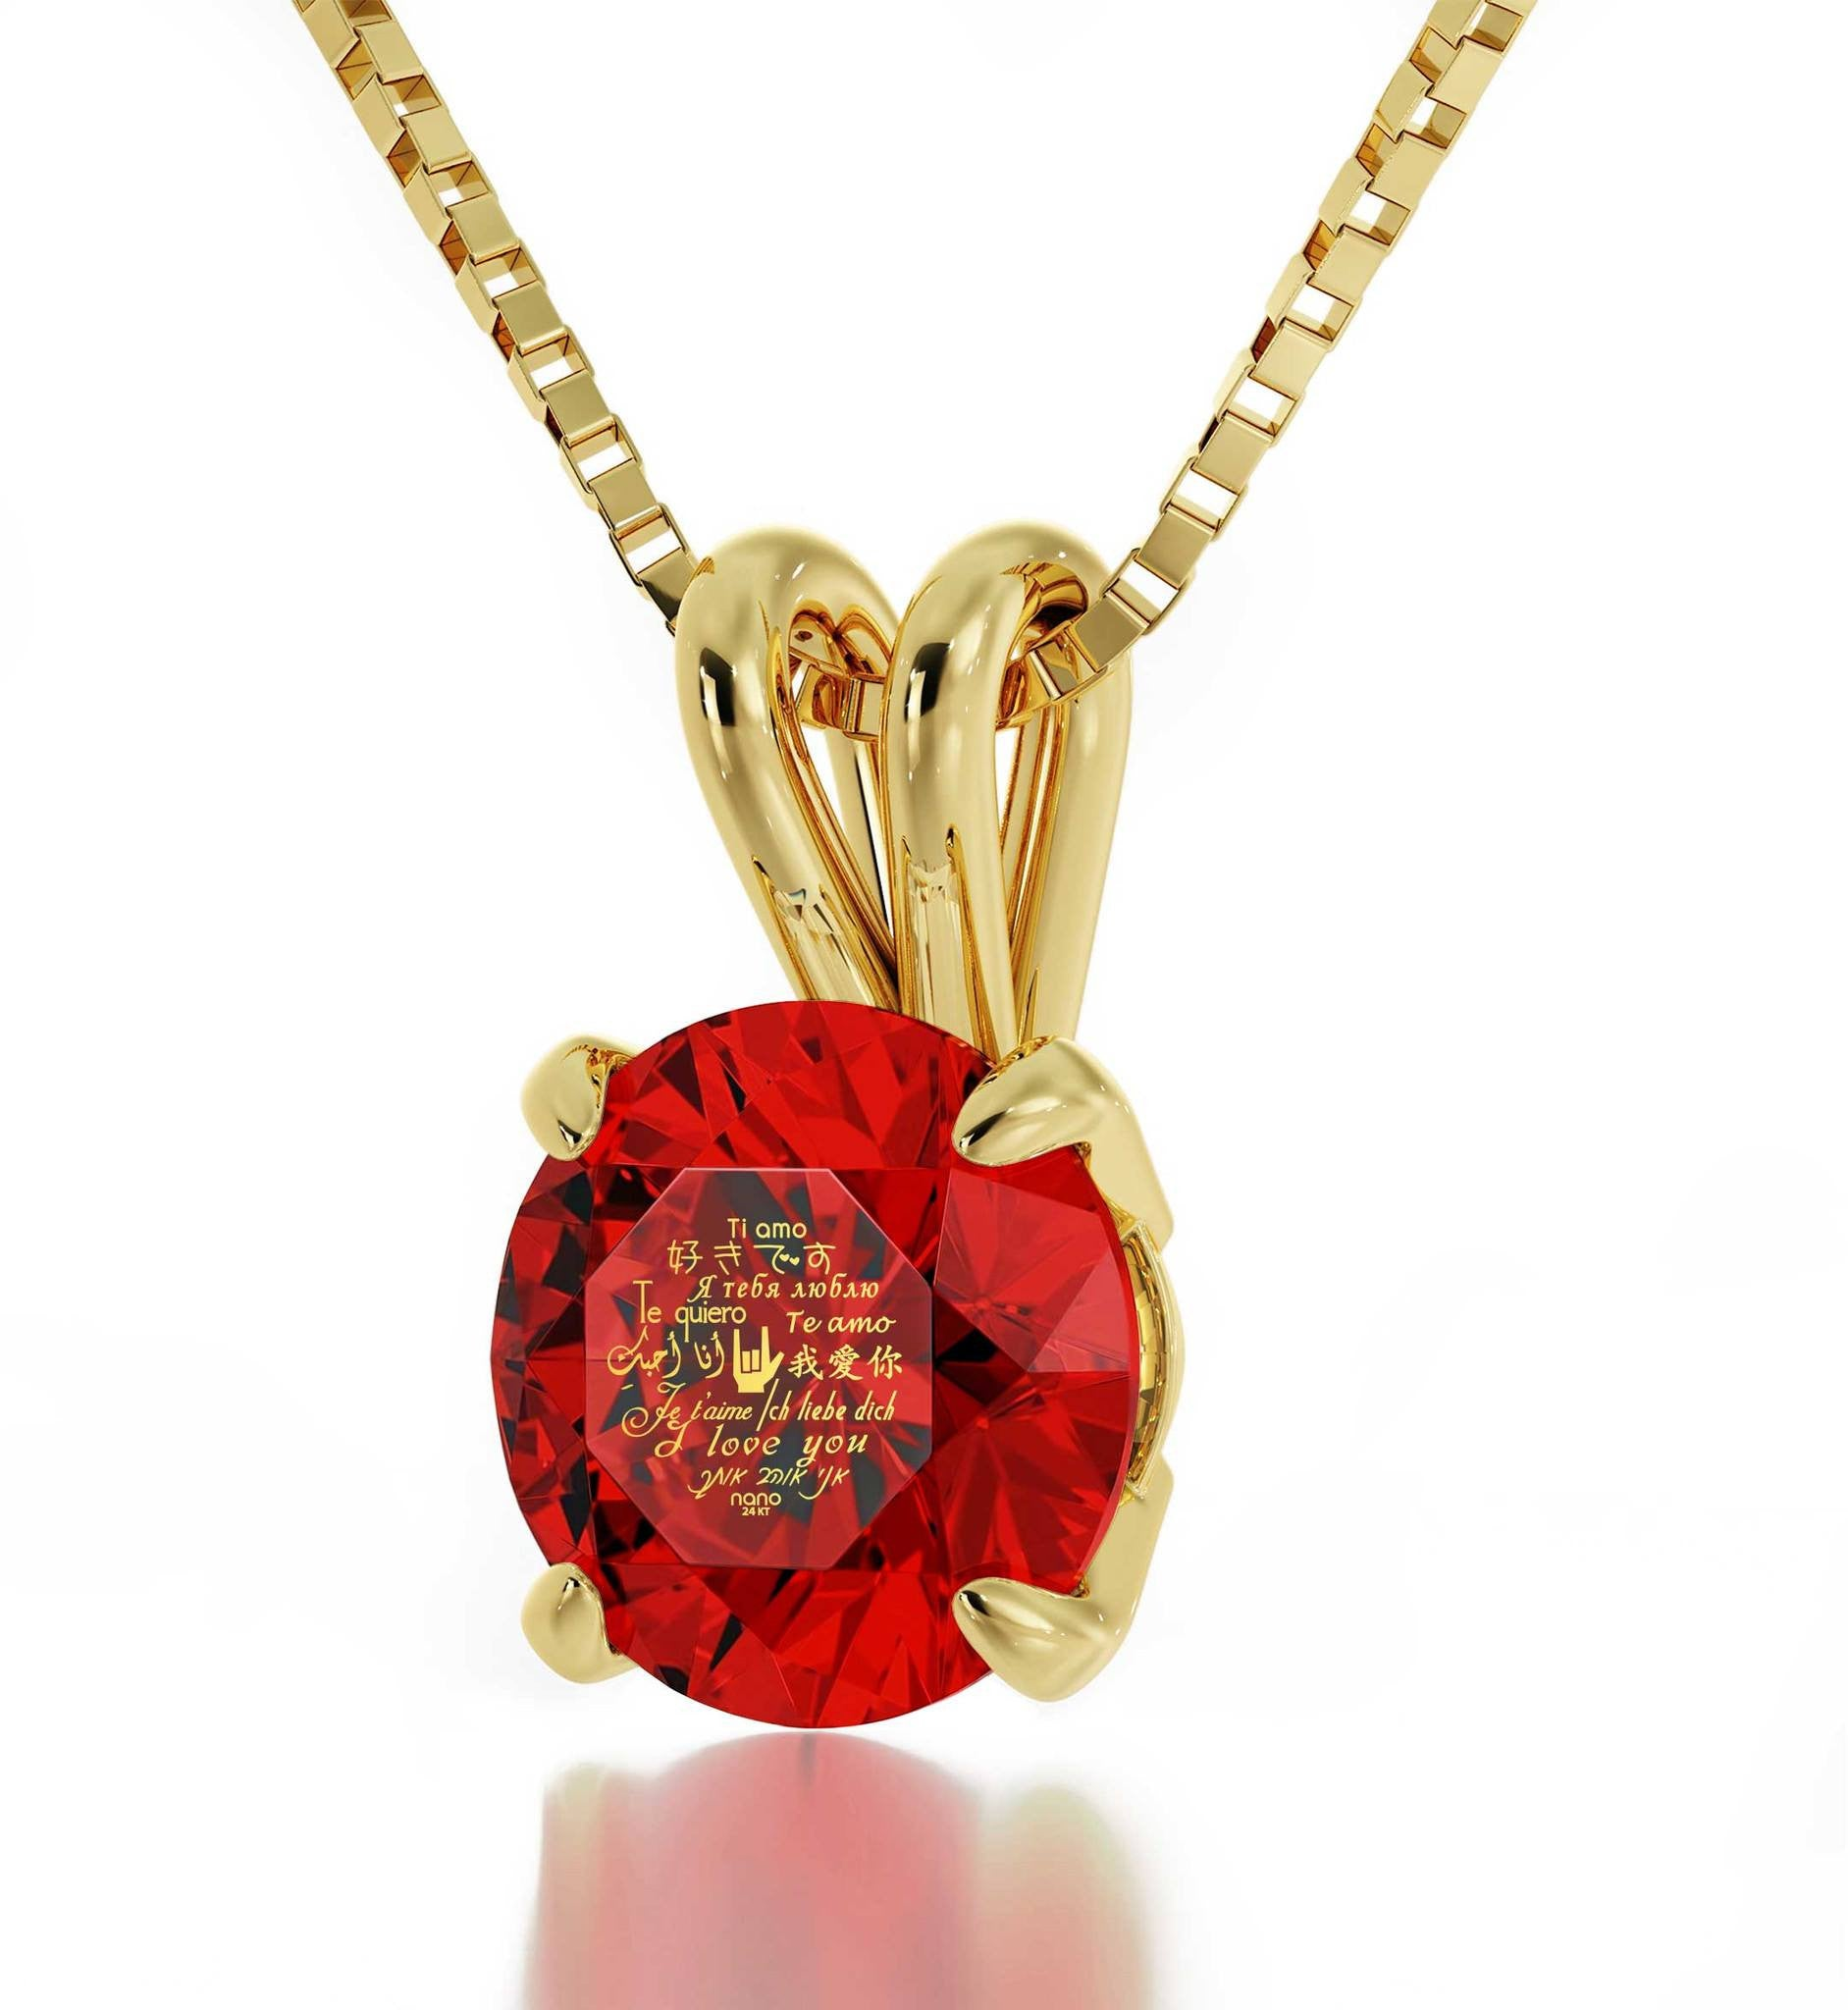 Valentines Presents for Girlfriend, Red Pendant Necklace, Best Online Jewelry Stores, Great Gifts for Wife by Nano